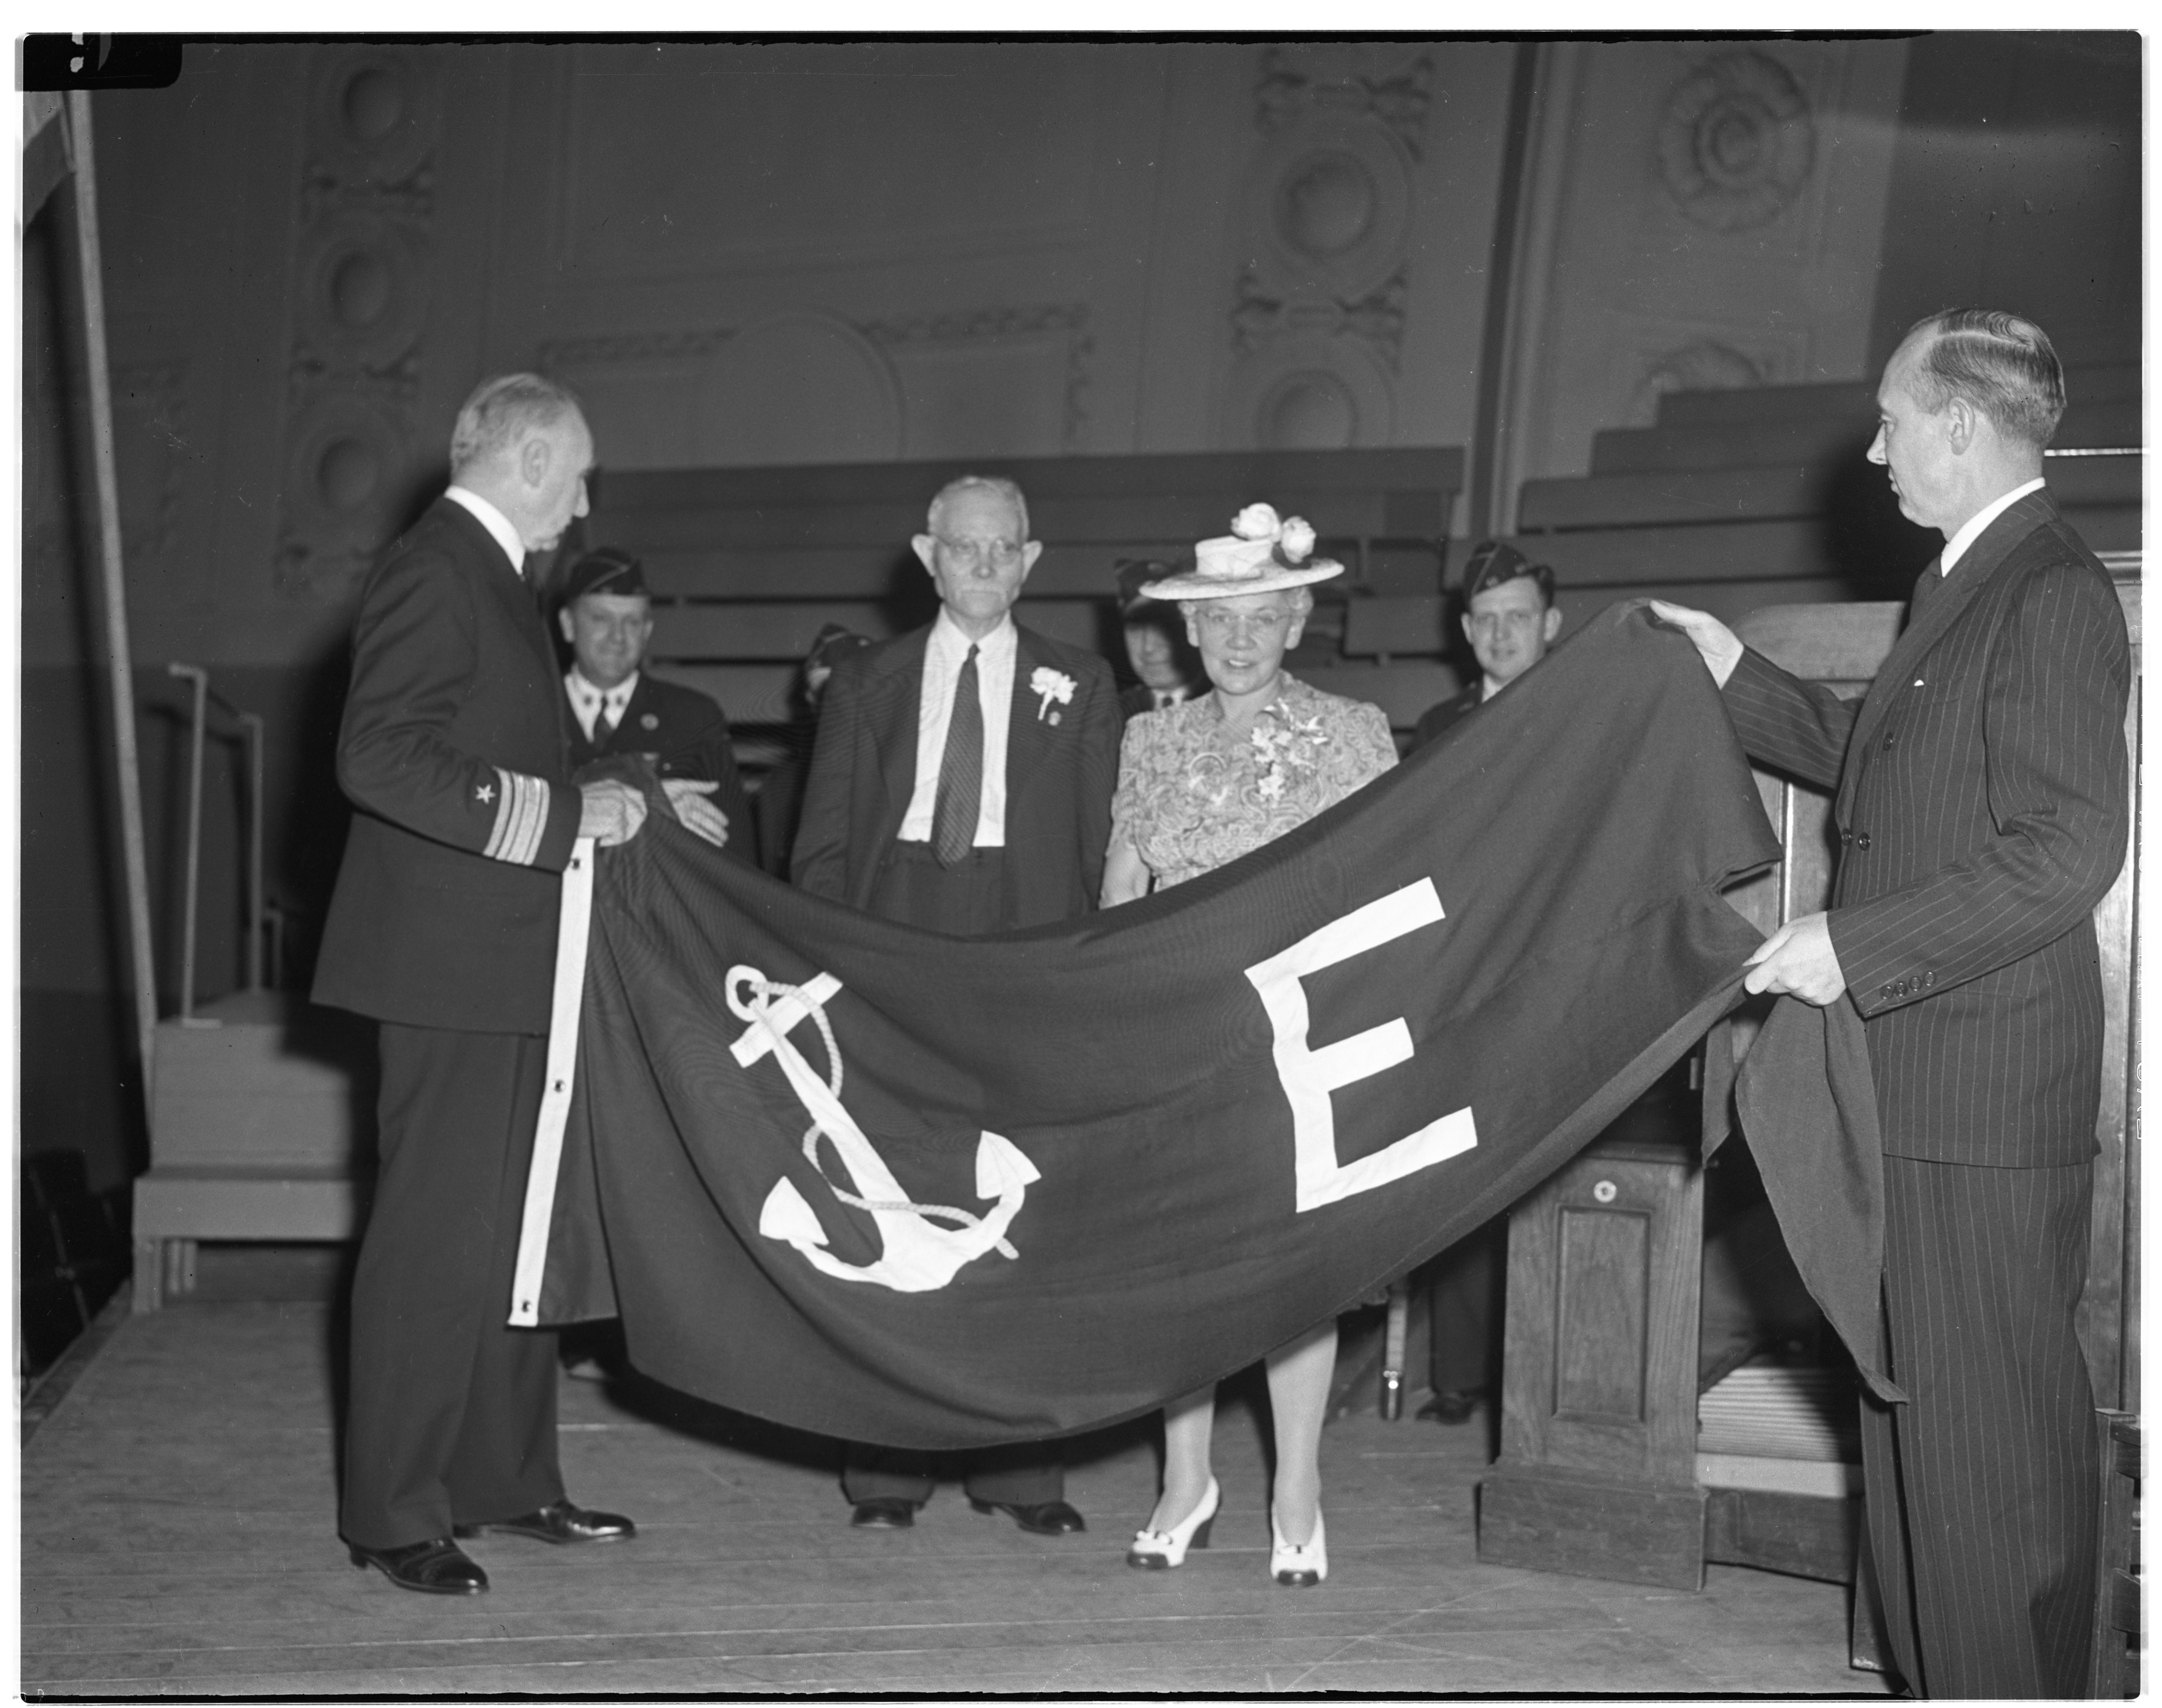 King-Seeley Corp. receives the Navy 'E' for excellence pennant from Rear-Admiral William Carleton Watts, United States Navy. image